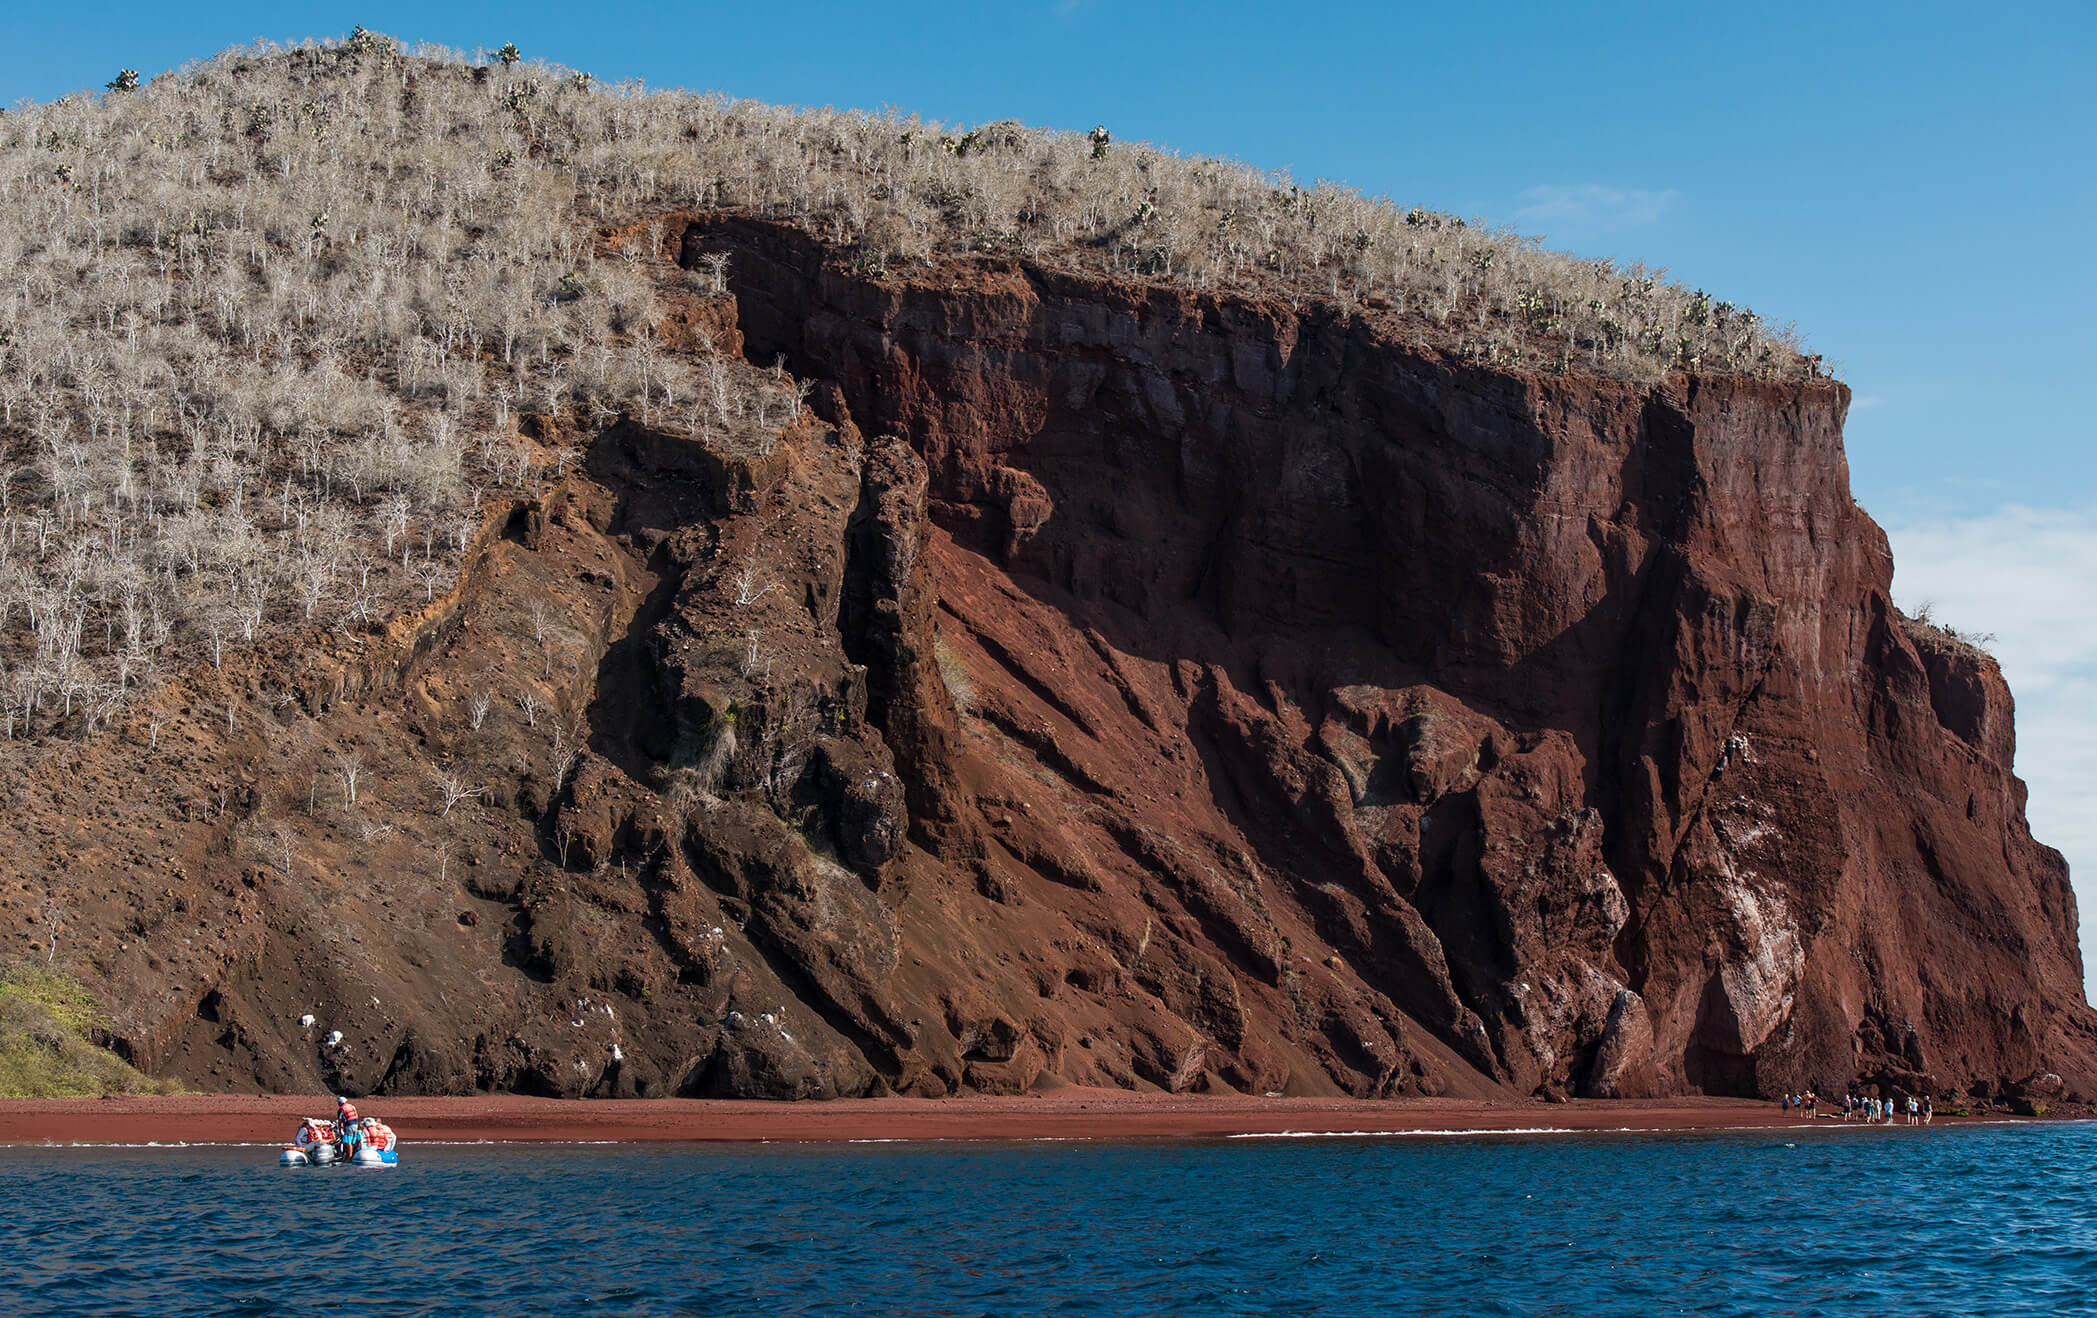 Rabida in Galapagos Islands, view of the red sand and hill with tourist wallking near to the boat